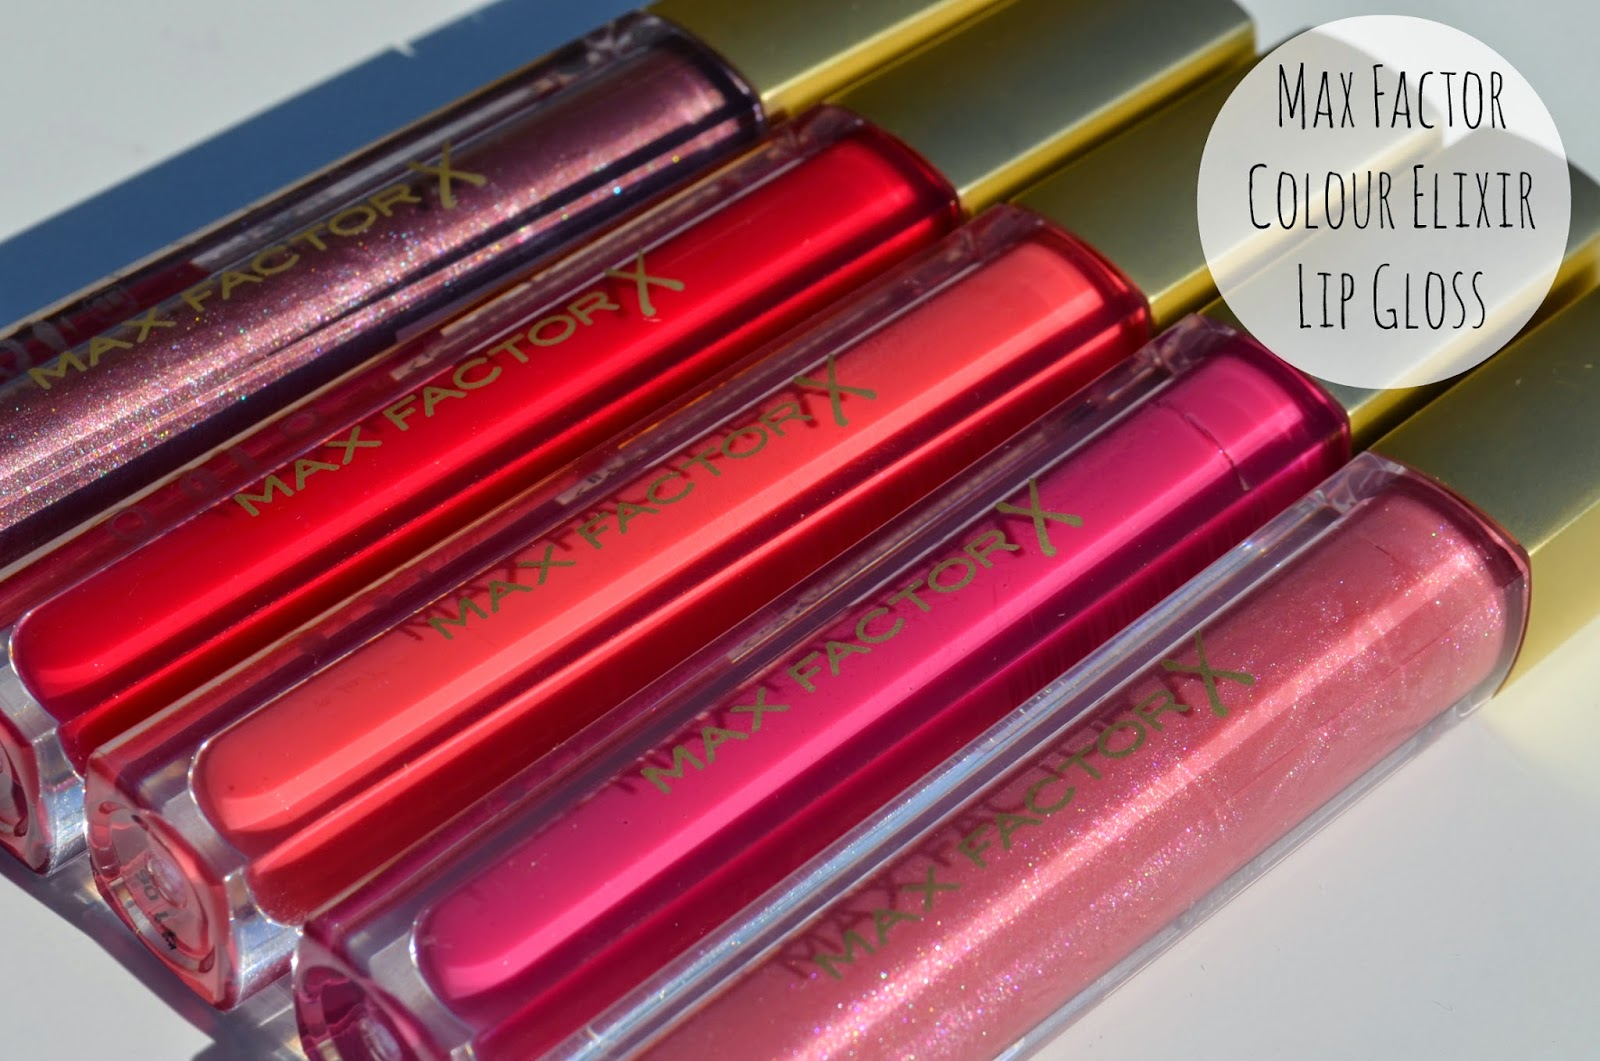 Max Factor Colour Elixir Gloss fluid range